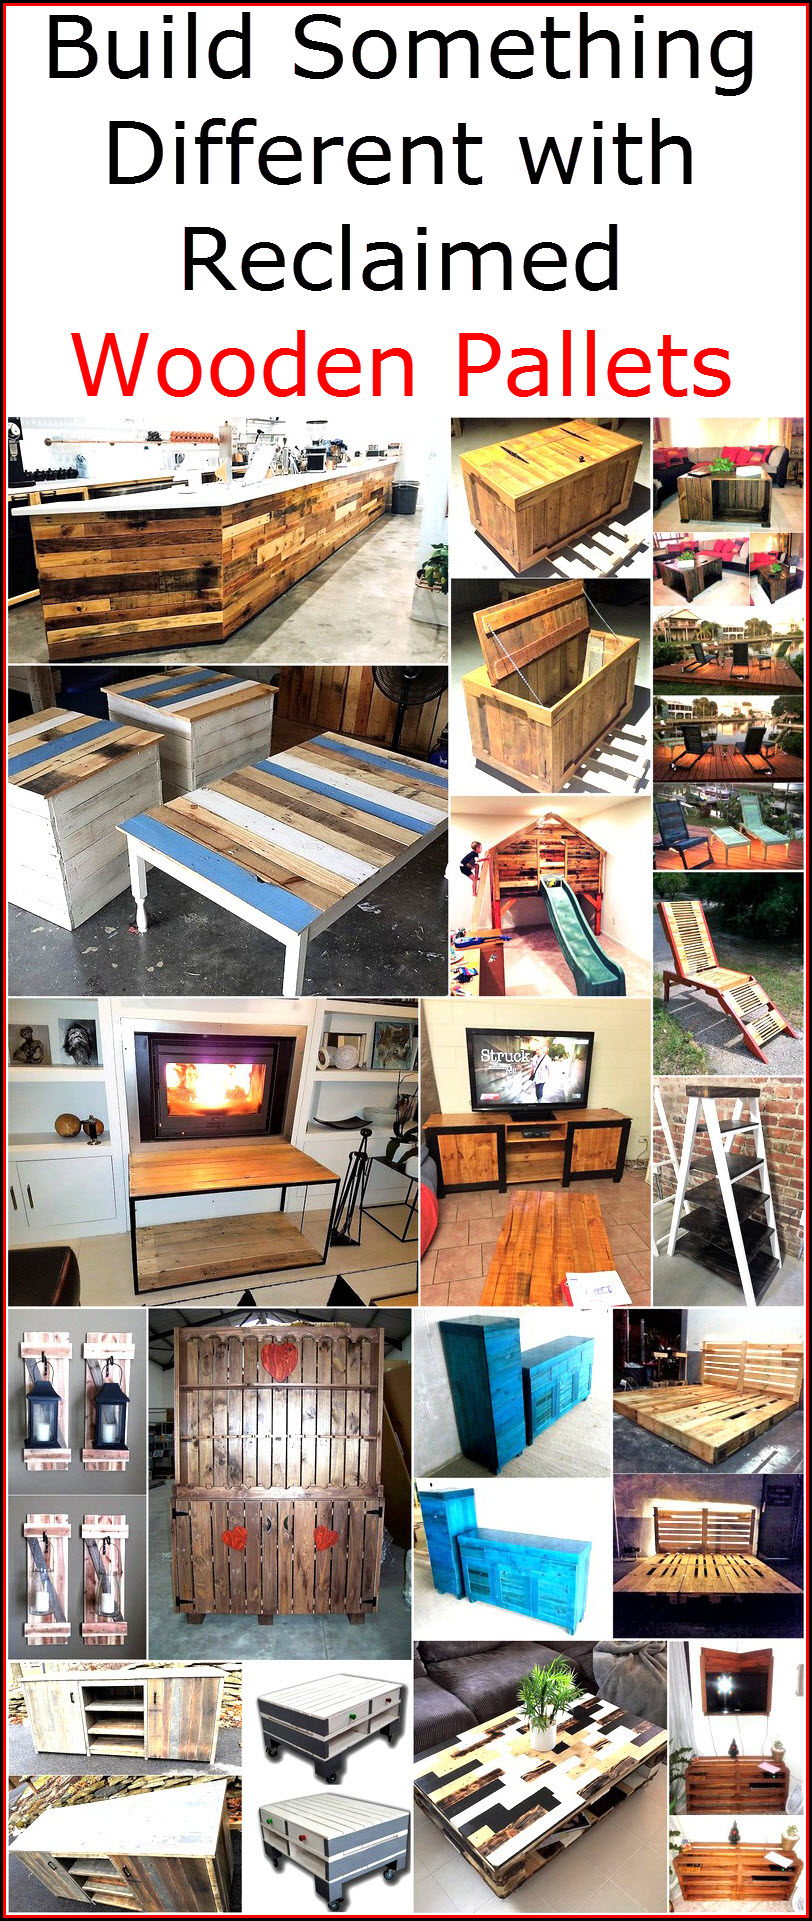 build-something-different-with-reclaimed-wooden-pallets